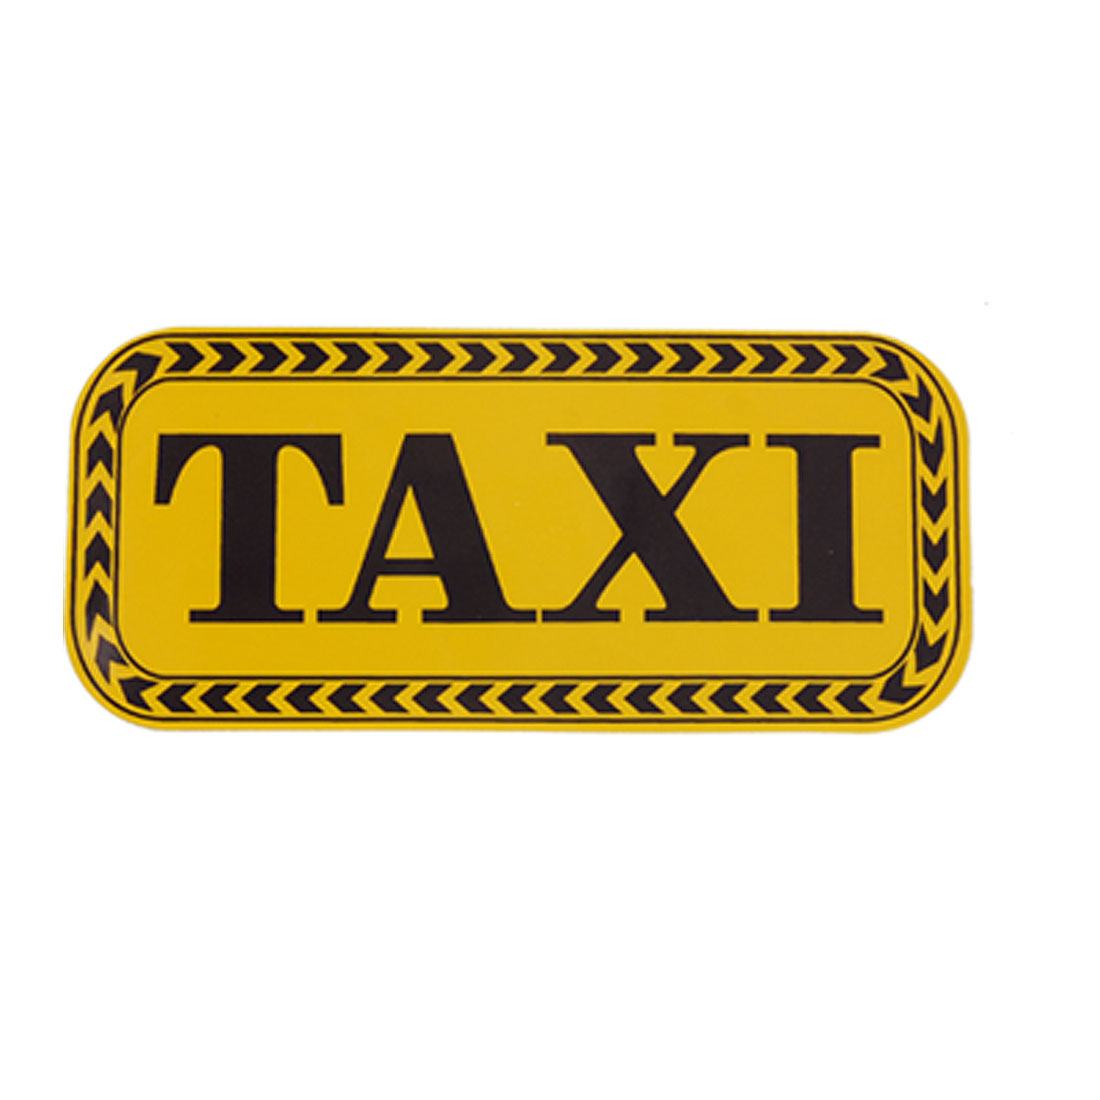 Black TAXI Letters Print Yellew Reflective Sticker Decal for Car